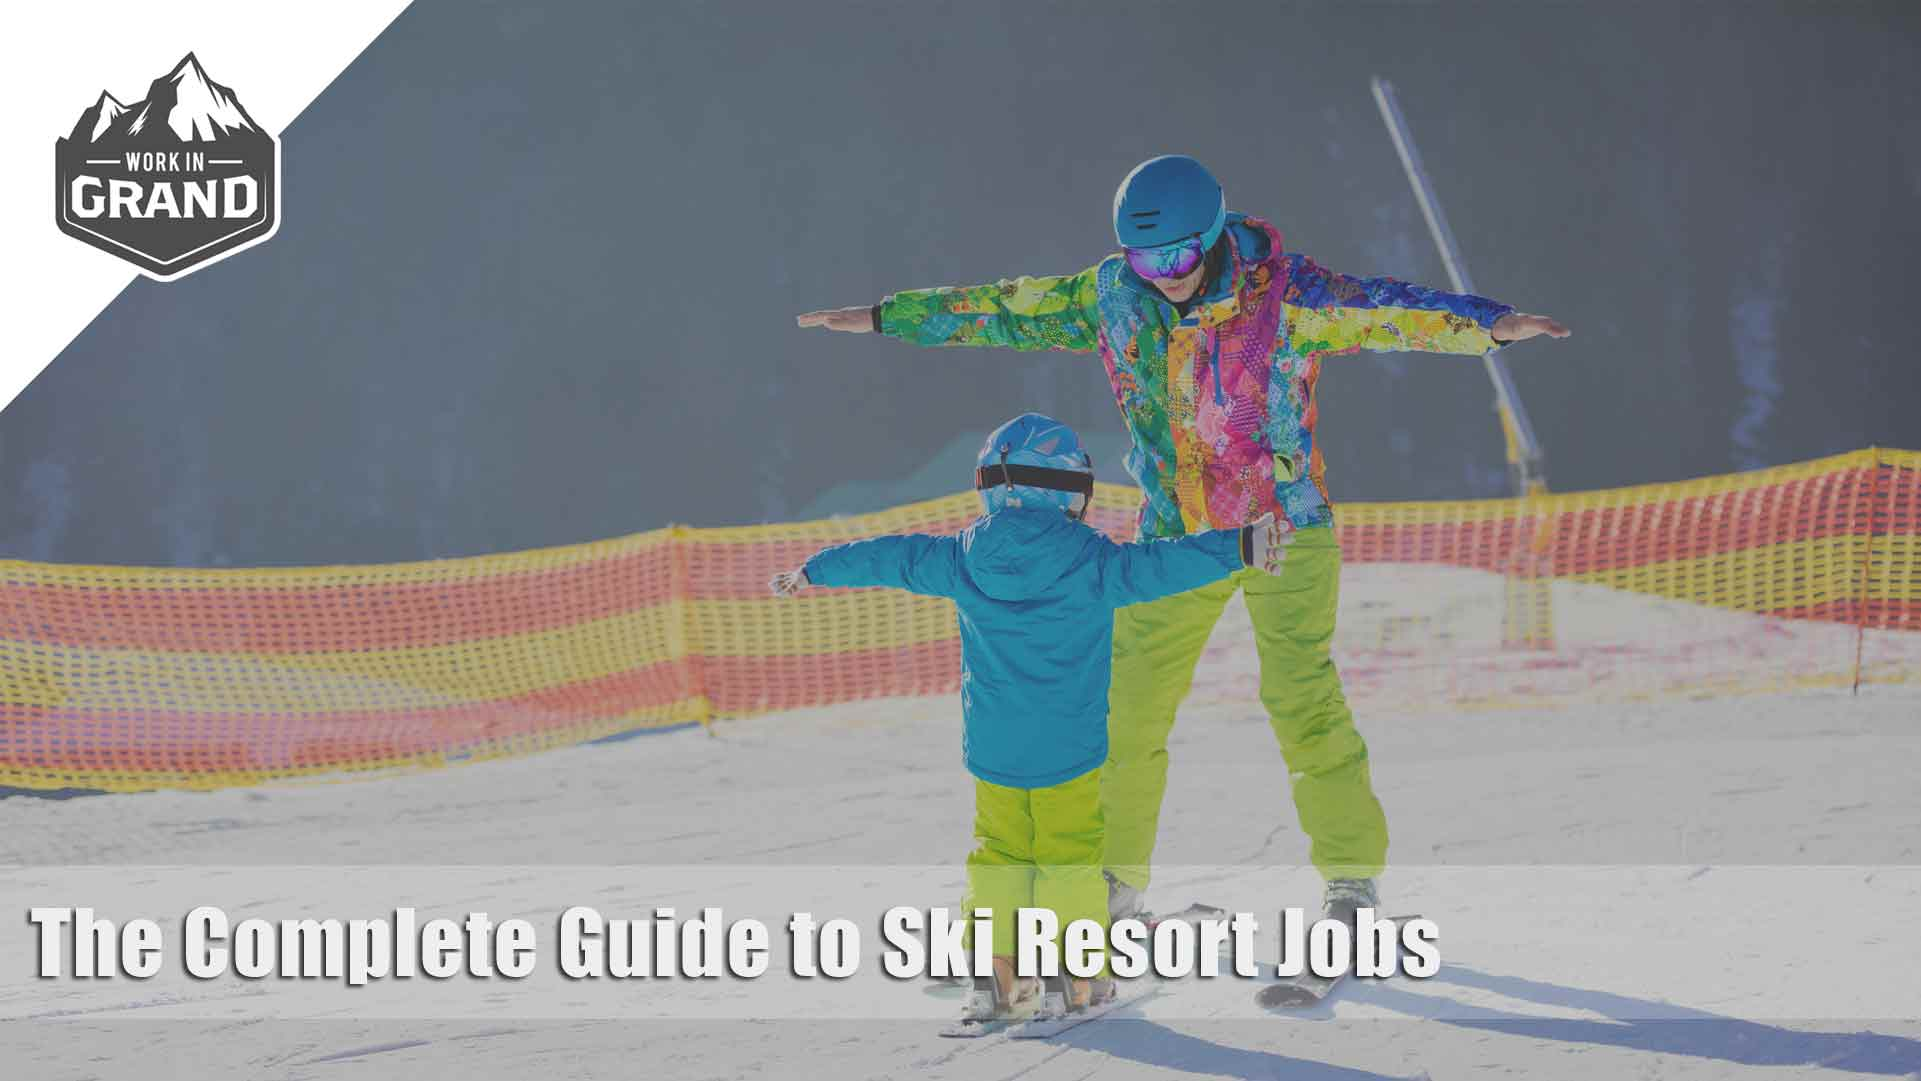 The Complete Guide to Ski Resort Jobs